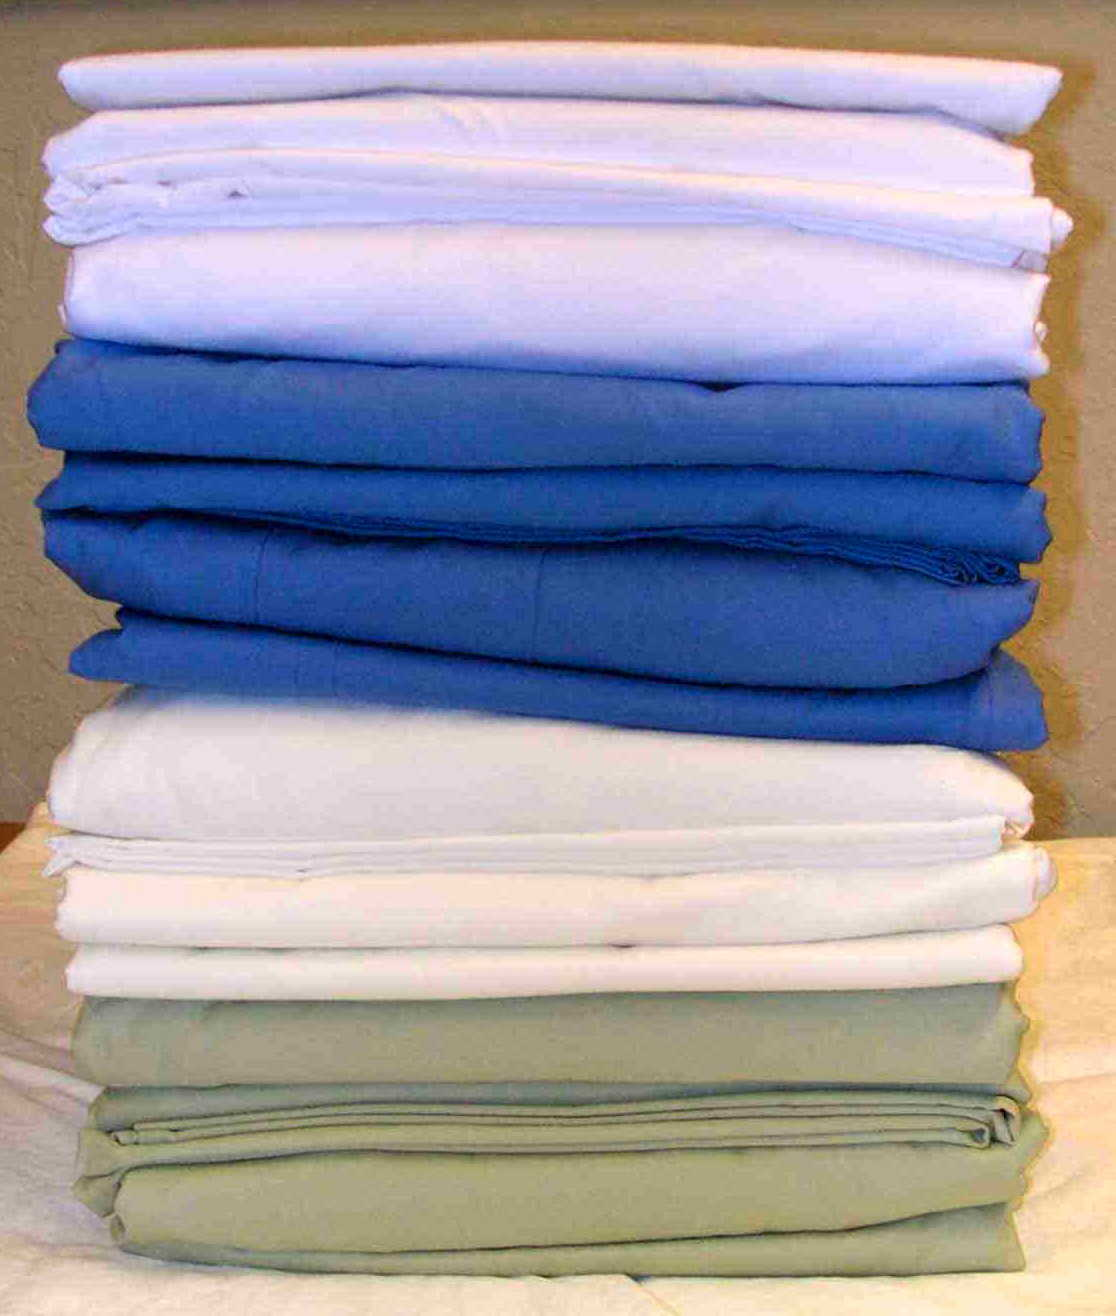 Fabric / Bed Linen